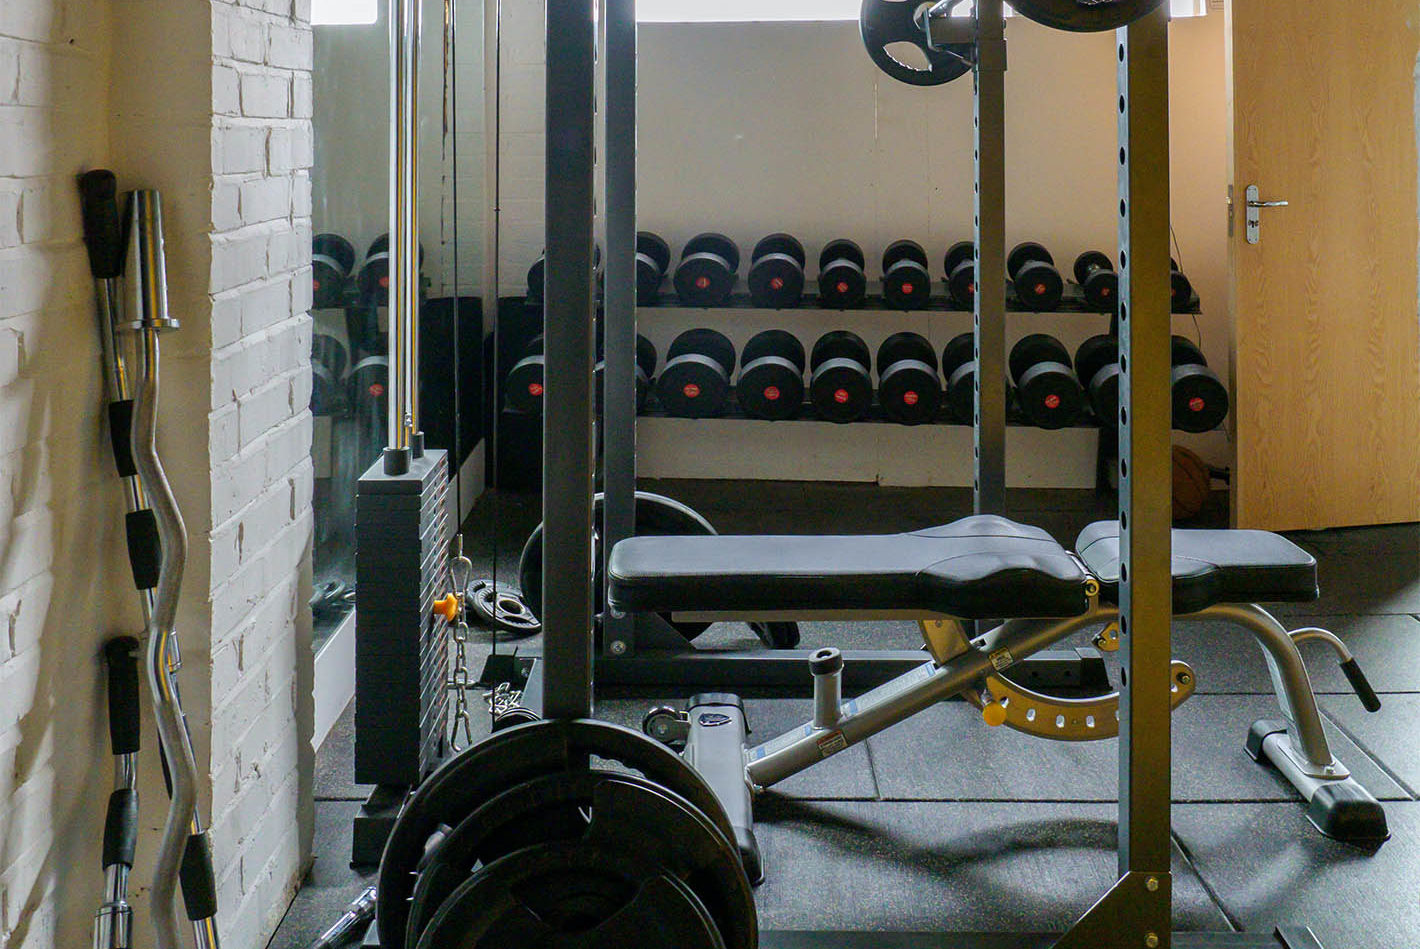 Small Gym with Dumbbells, a Squat Rack, and a Bench